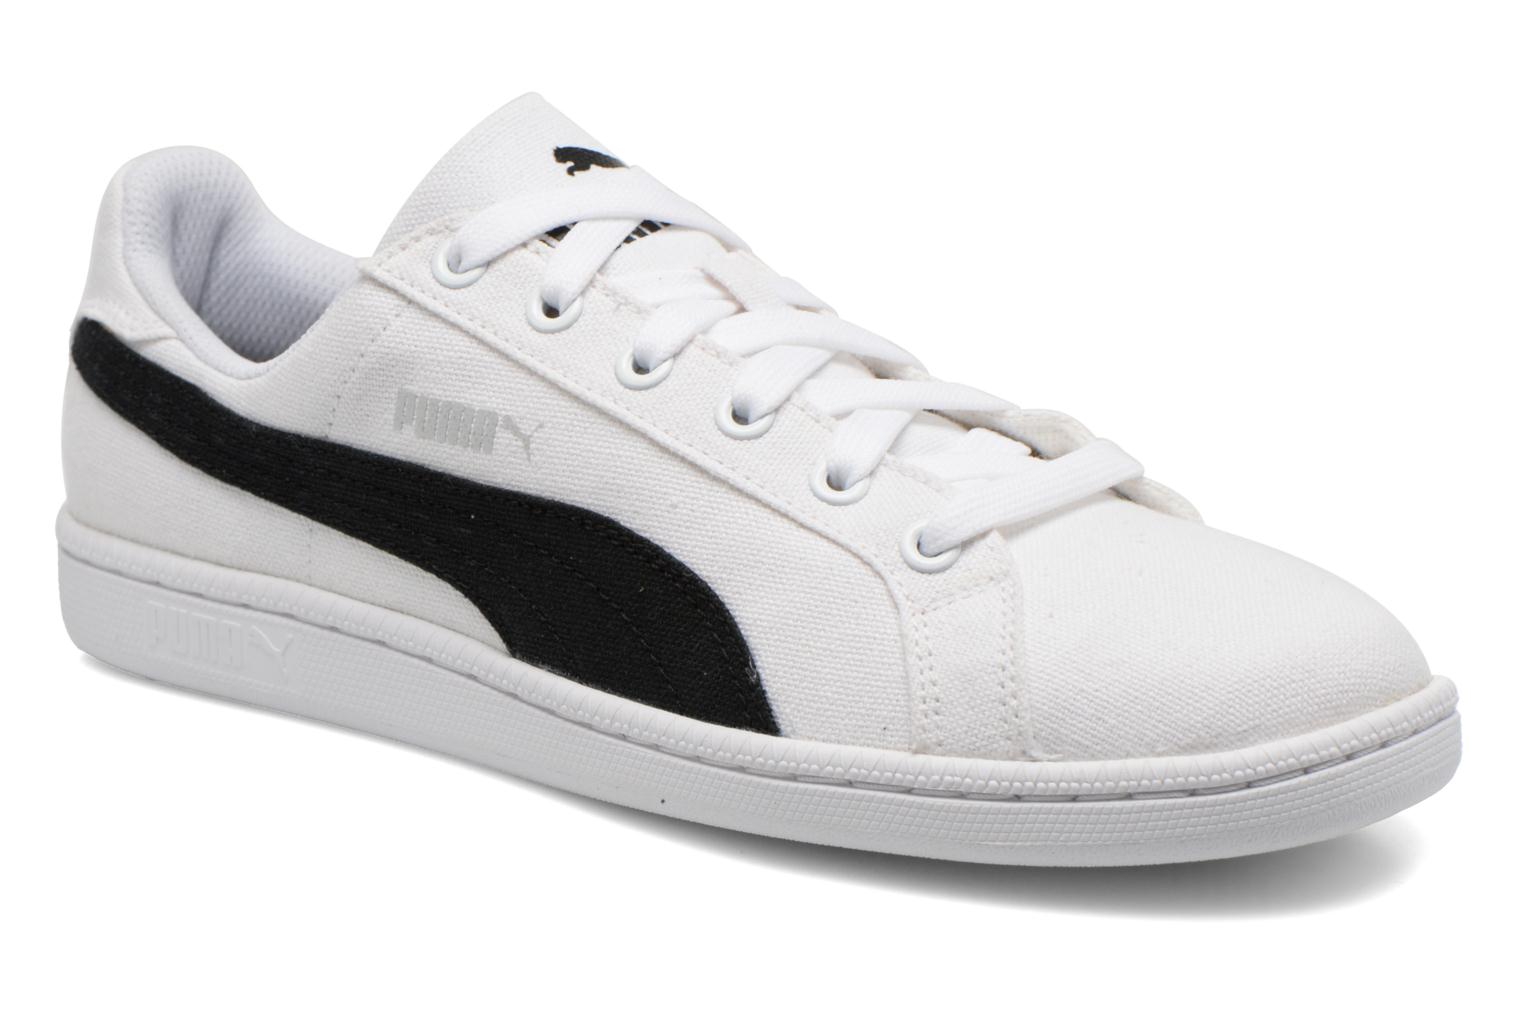 Puma Smash Cv White/black